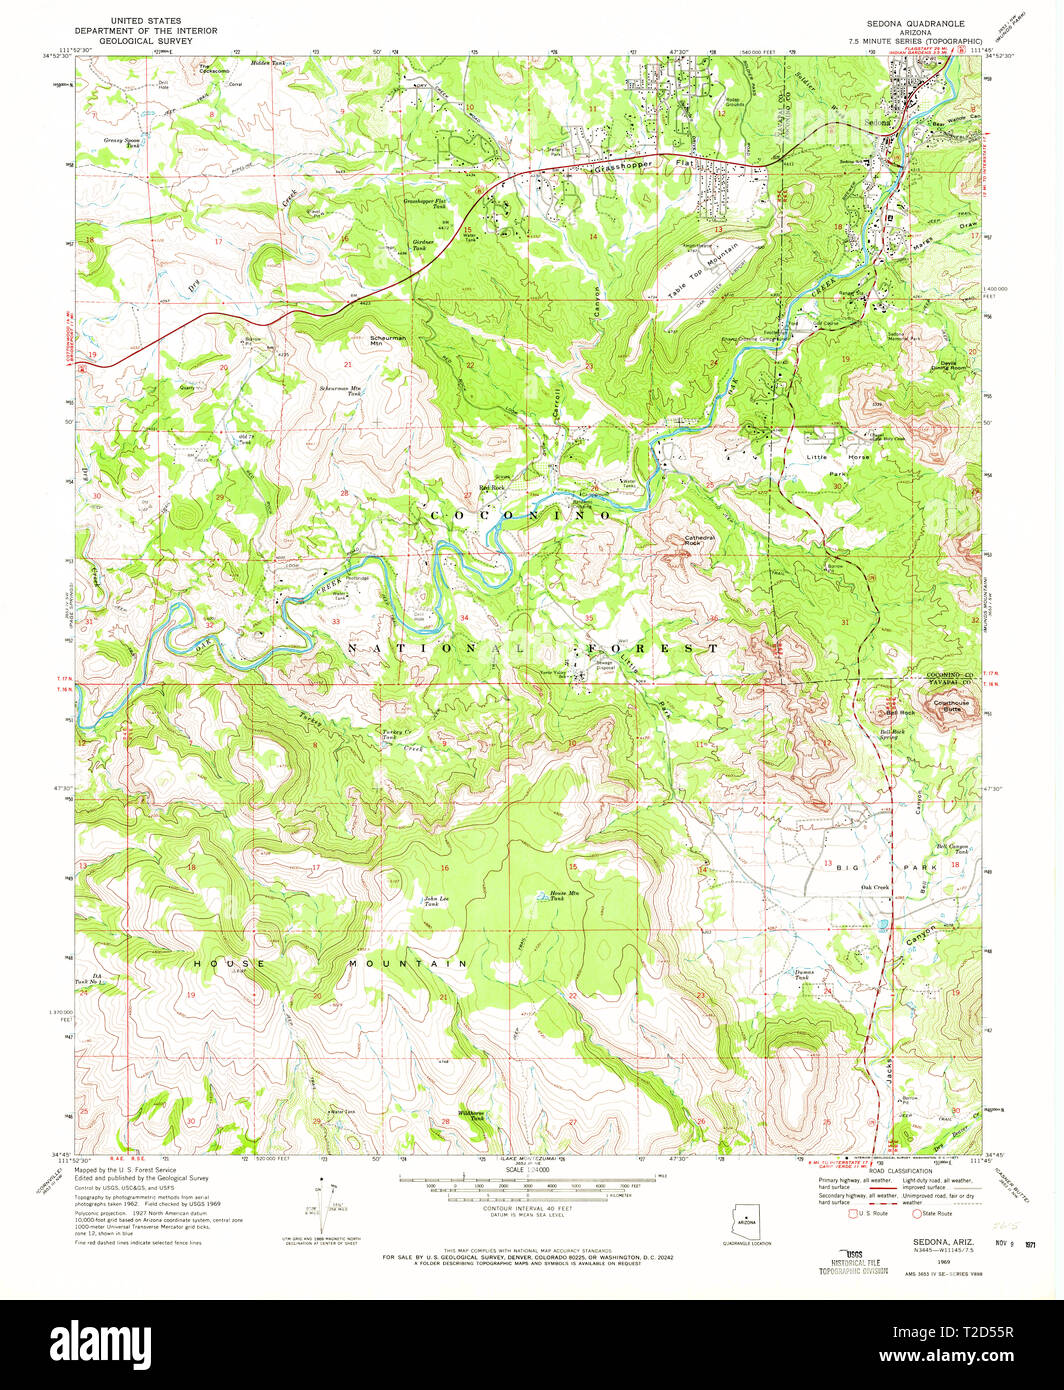 Map Of Arizona Including Sedona.Usgs Topo Map Arizona Az Sedona 313303 1969 24000 Restoration Stock